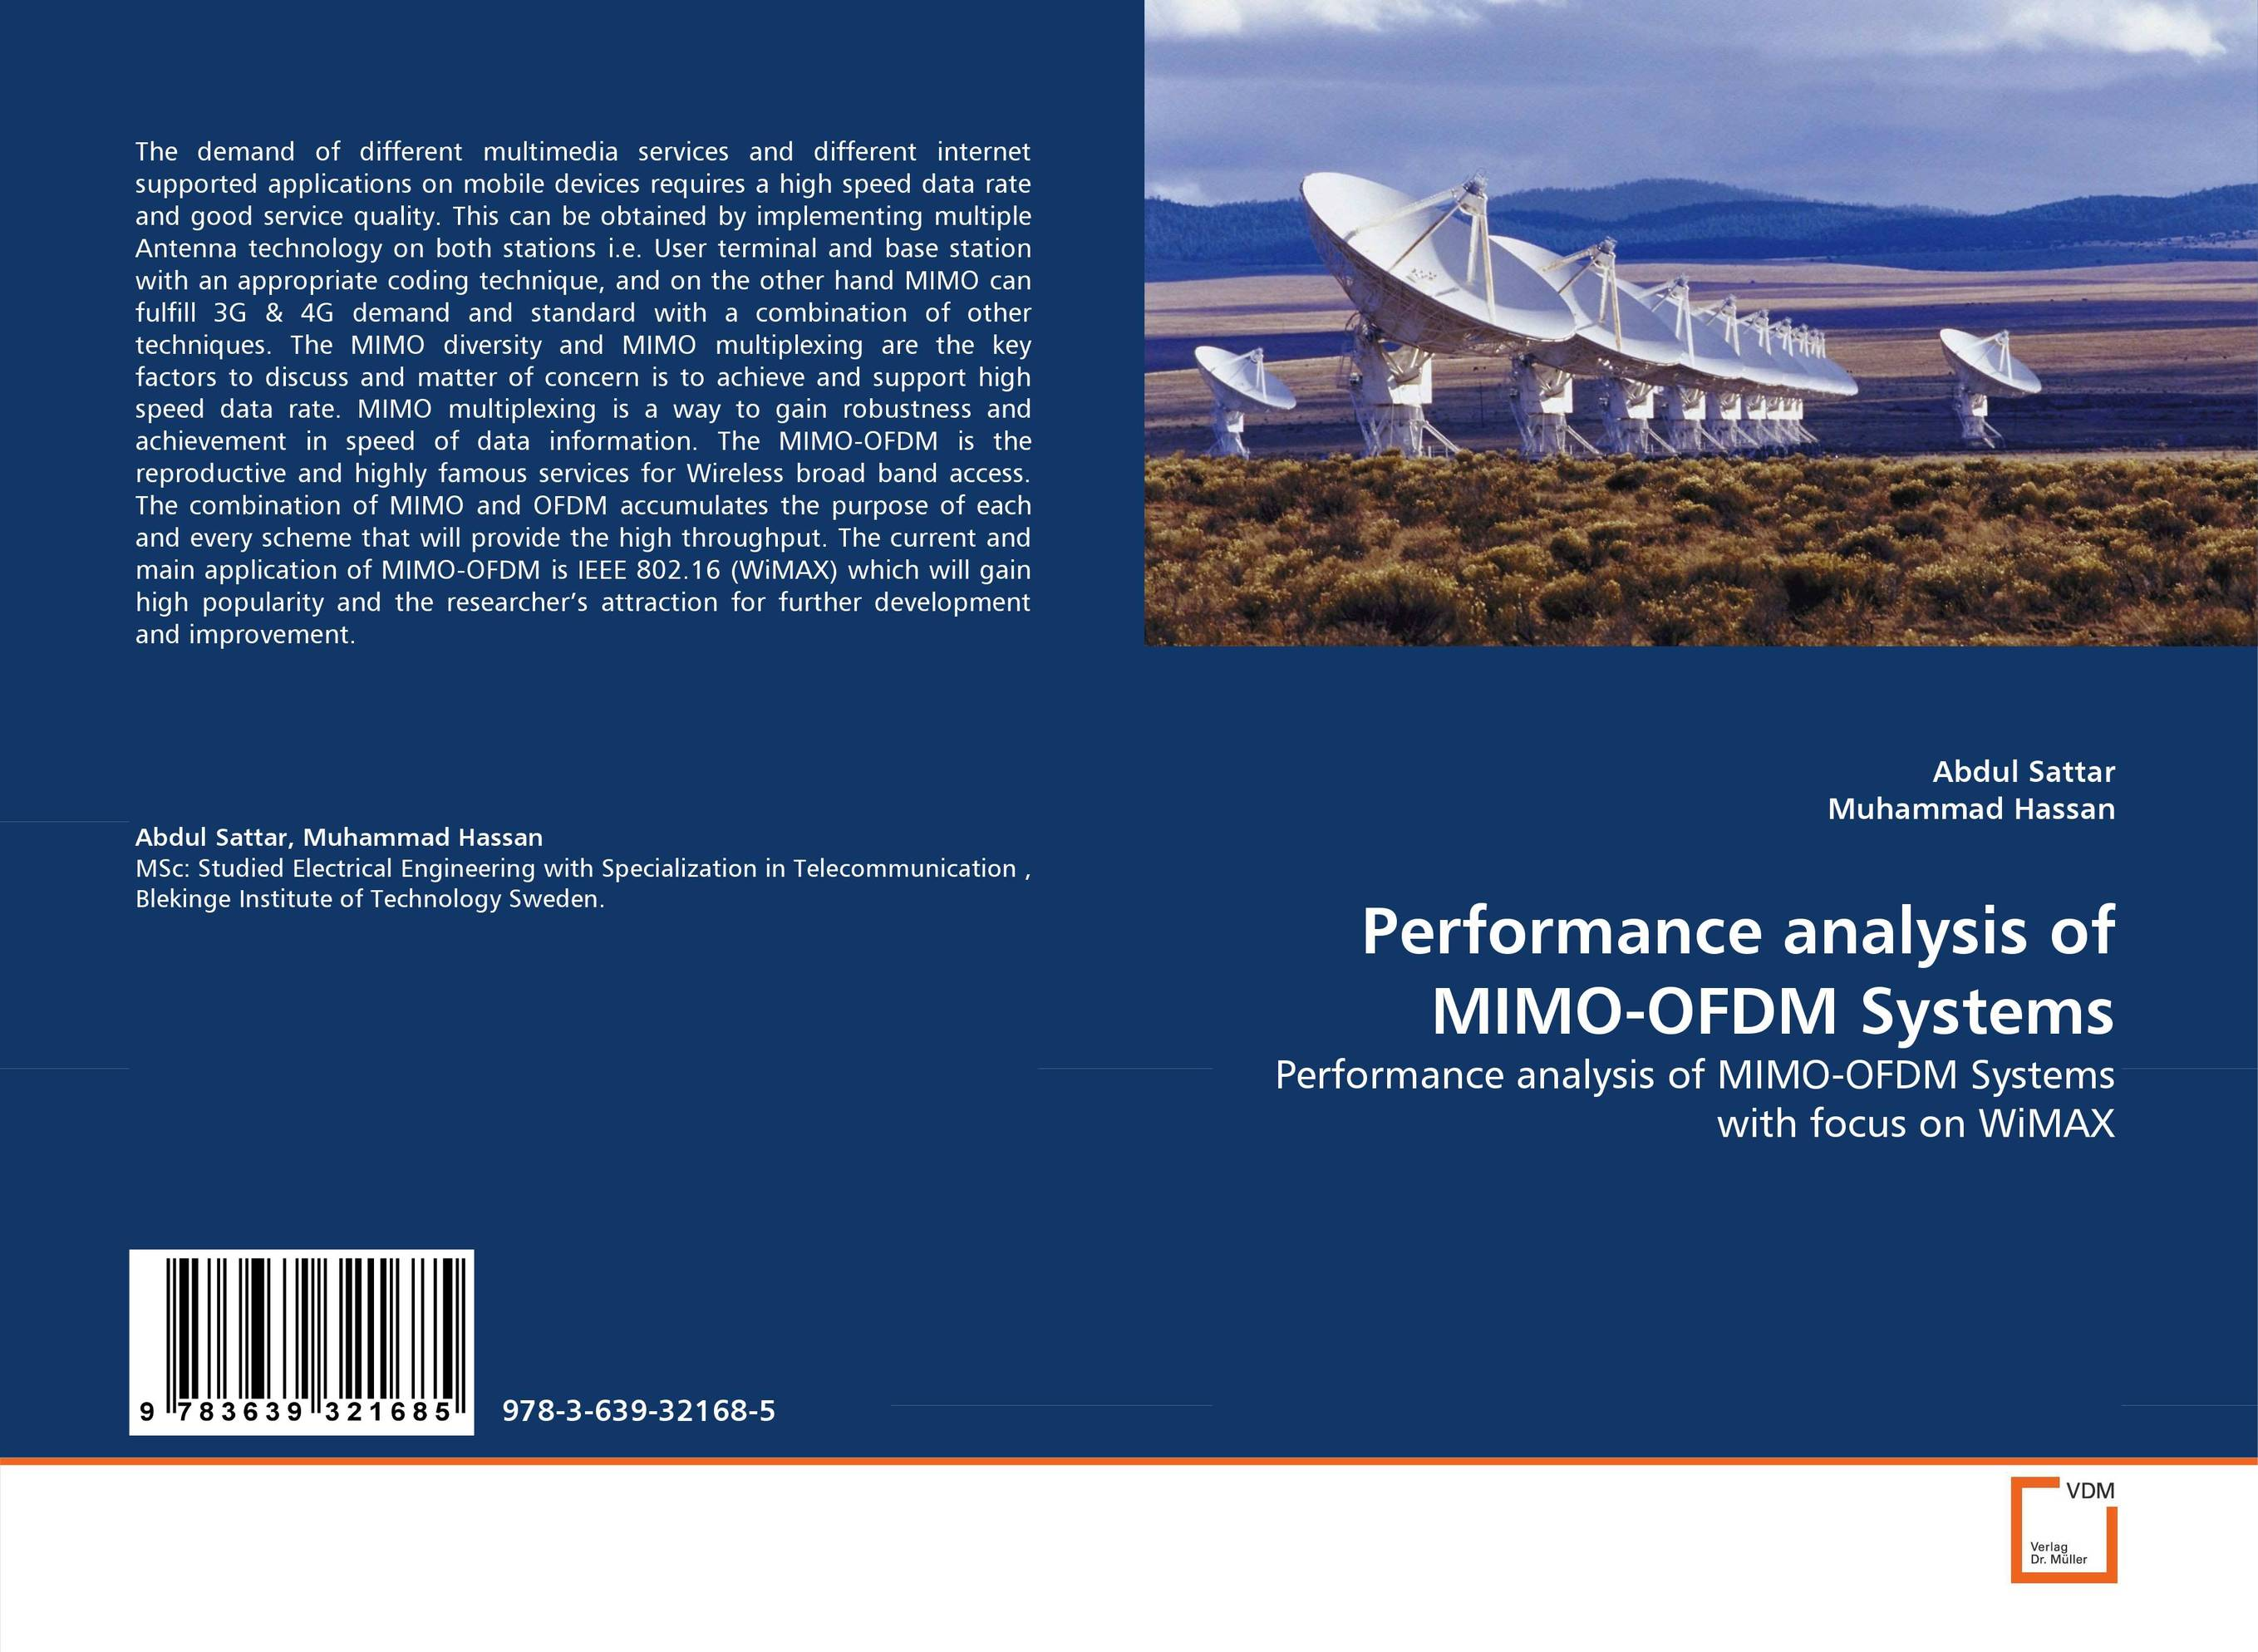 Performance analysis of MIMO-OFDM Systems